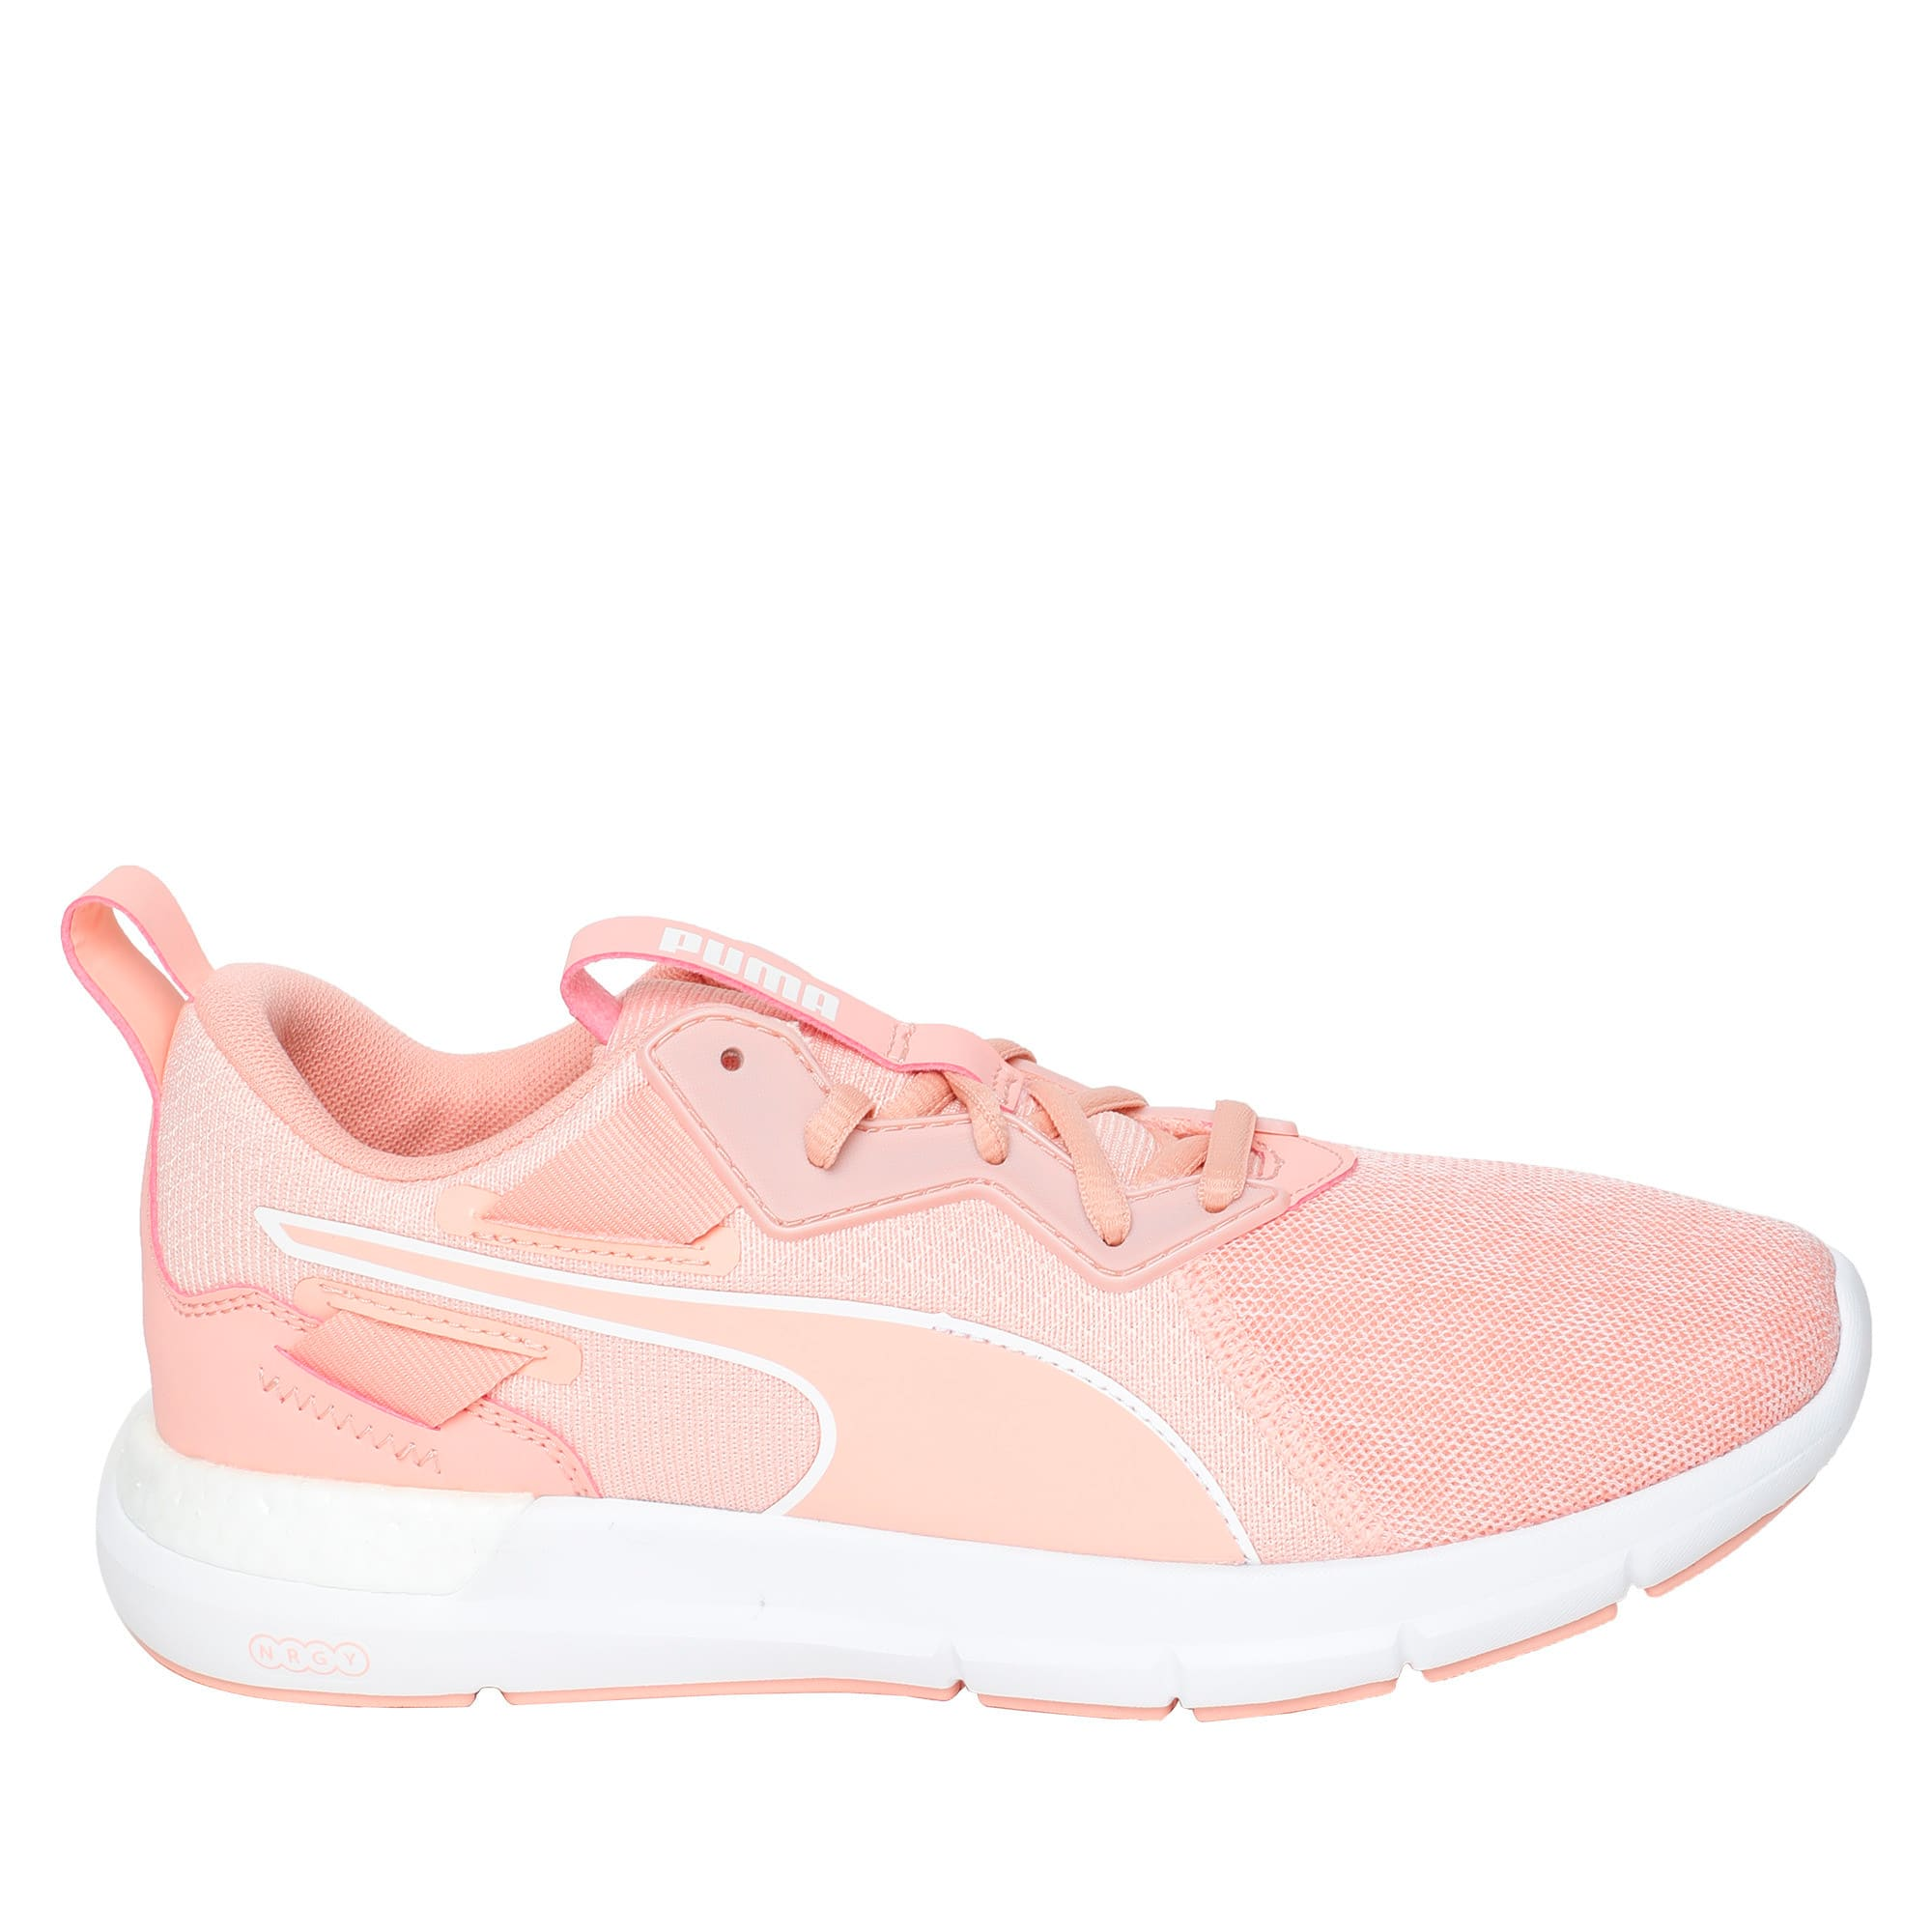 Thumbnail 5 of NRGY Dynamo Futuro Wns Puma Black-Puma W, Peach Bud-Puma White, medium-IND